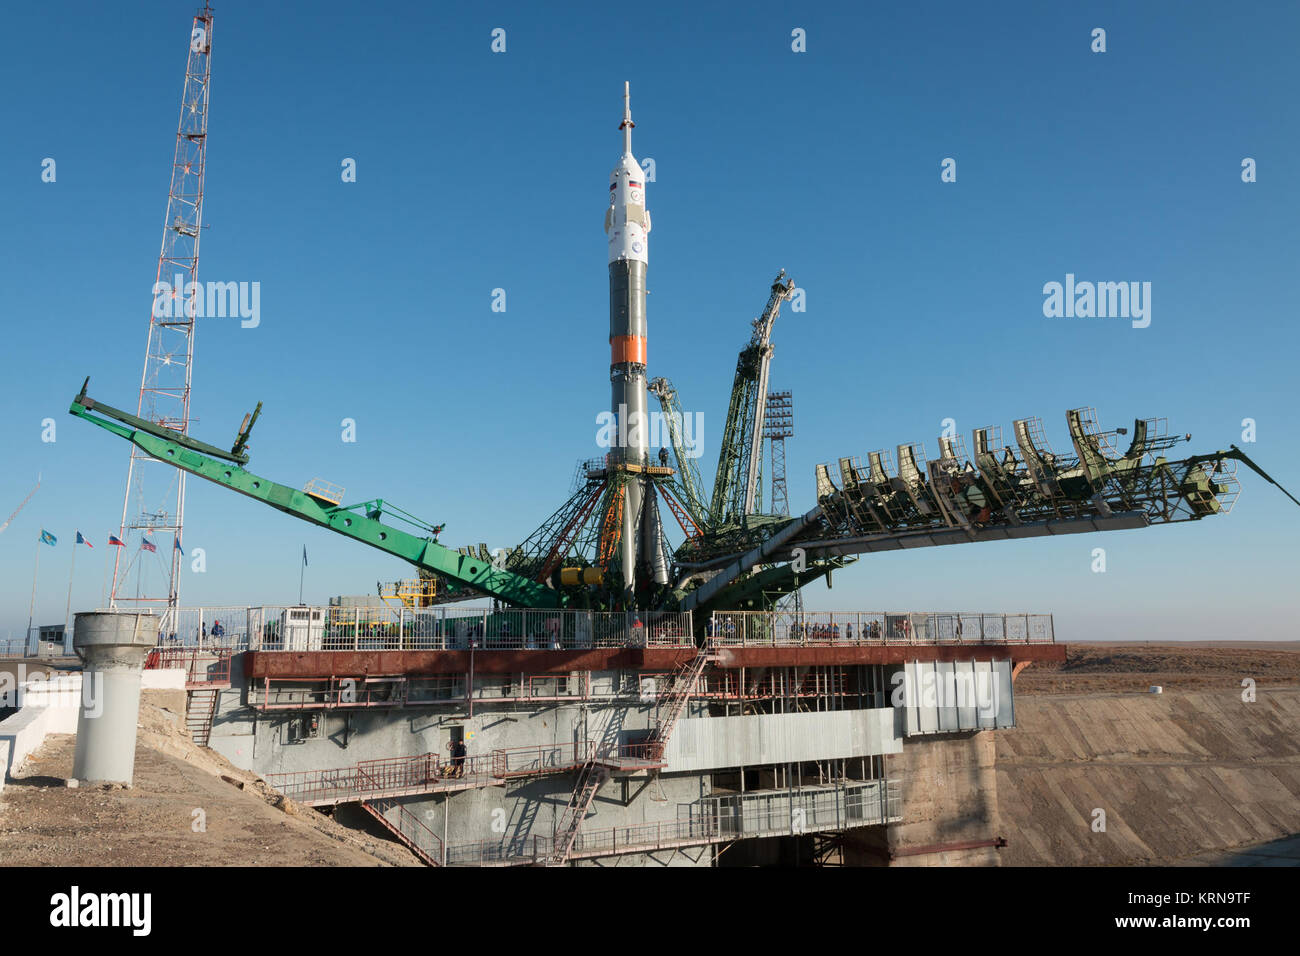 The Soyuz rocket is seen after being rolled out by train to the launch pad at the Baikonur Cosmodrome, Kazakhstan, - Stock Image